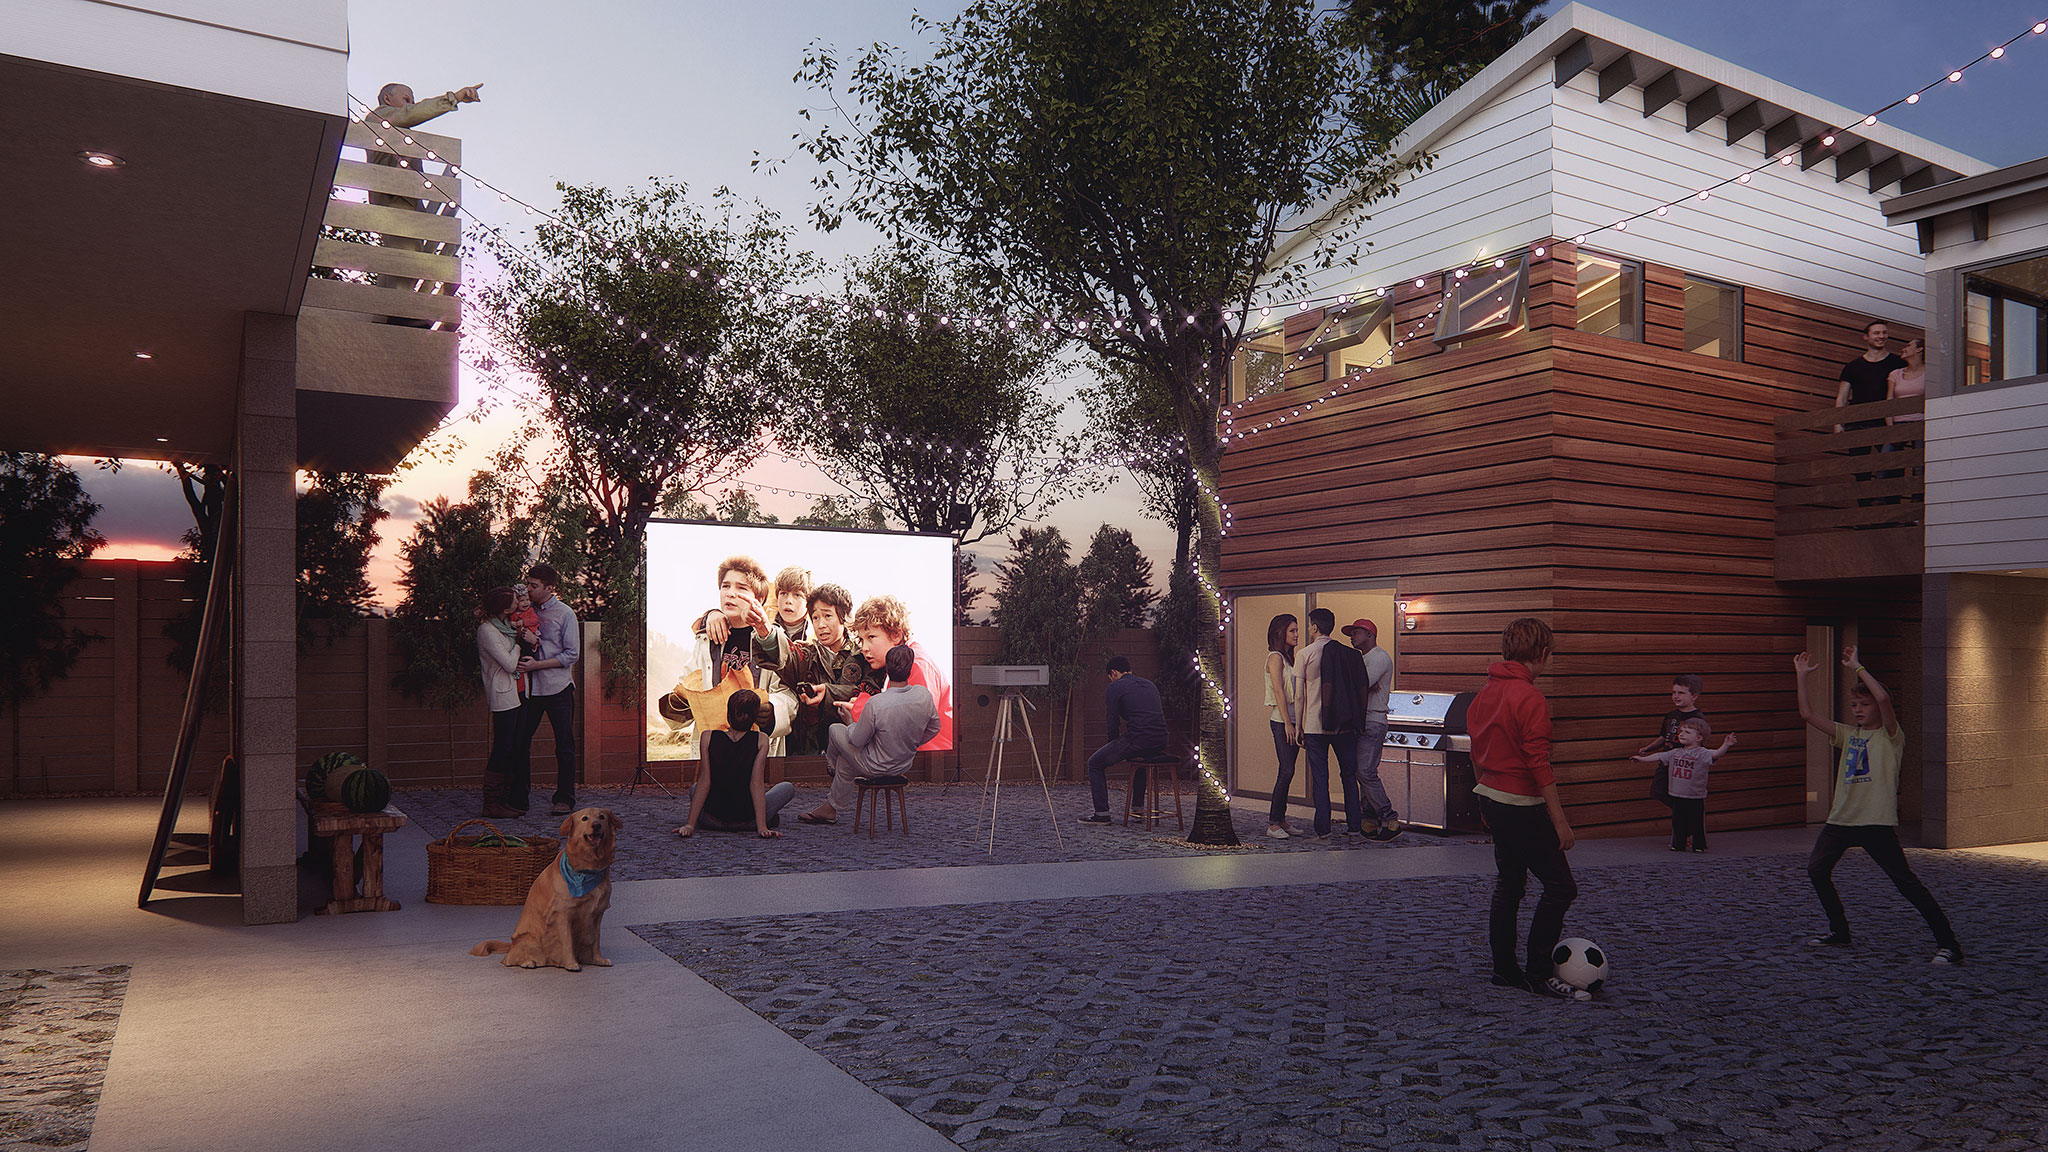 The Shed Architecural Rendering - Courtyard